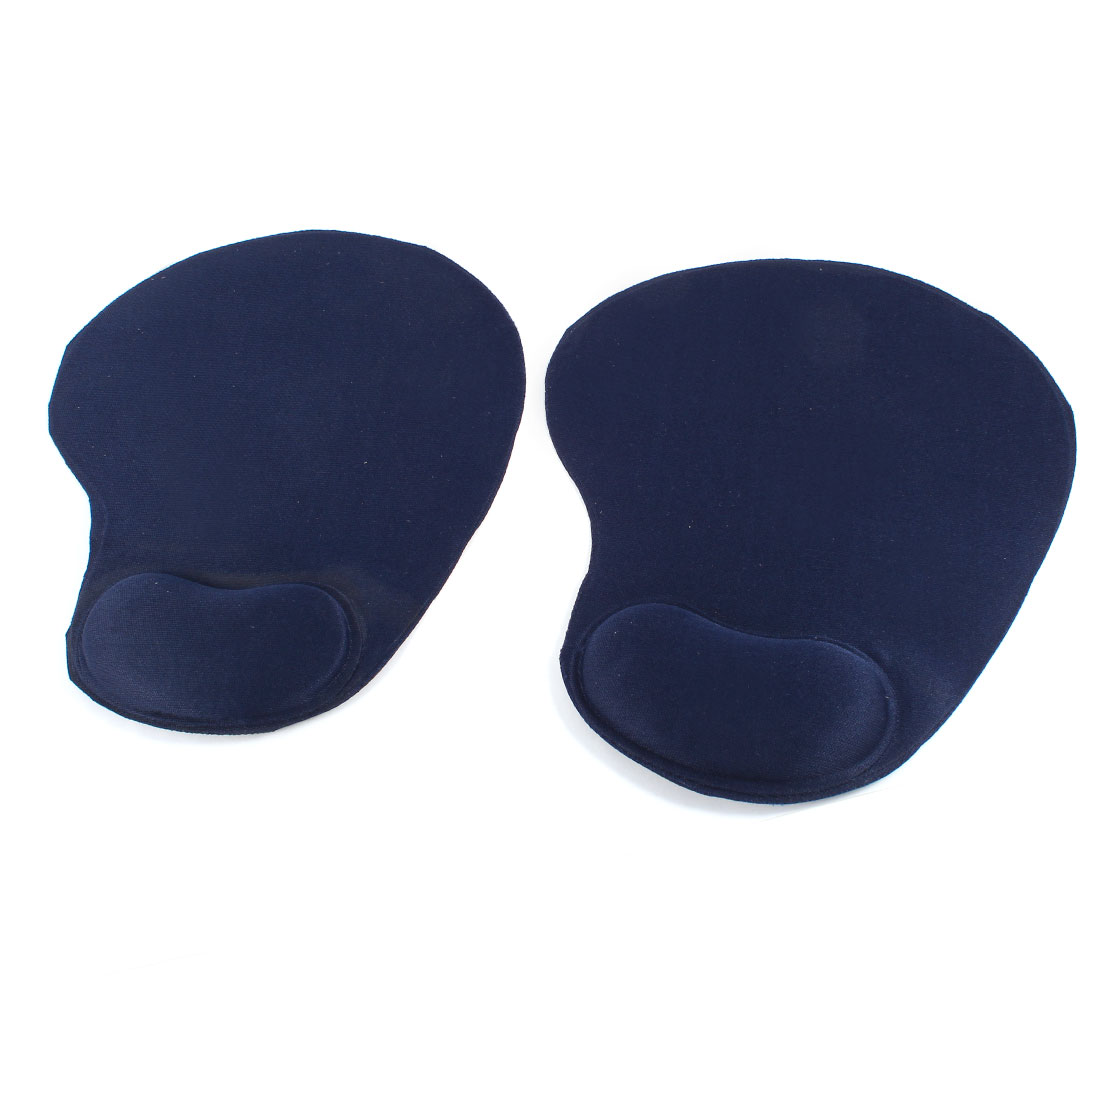 2 Pcs Notebook PC Nylon Rubber Heart Mouse Pad Wrist Rest Support Dark Blue